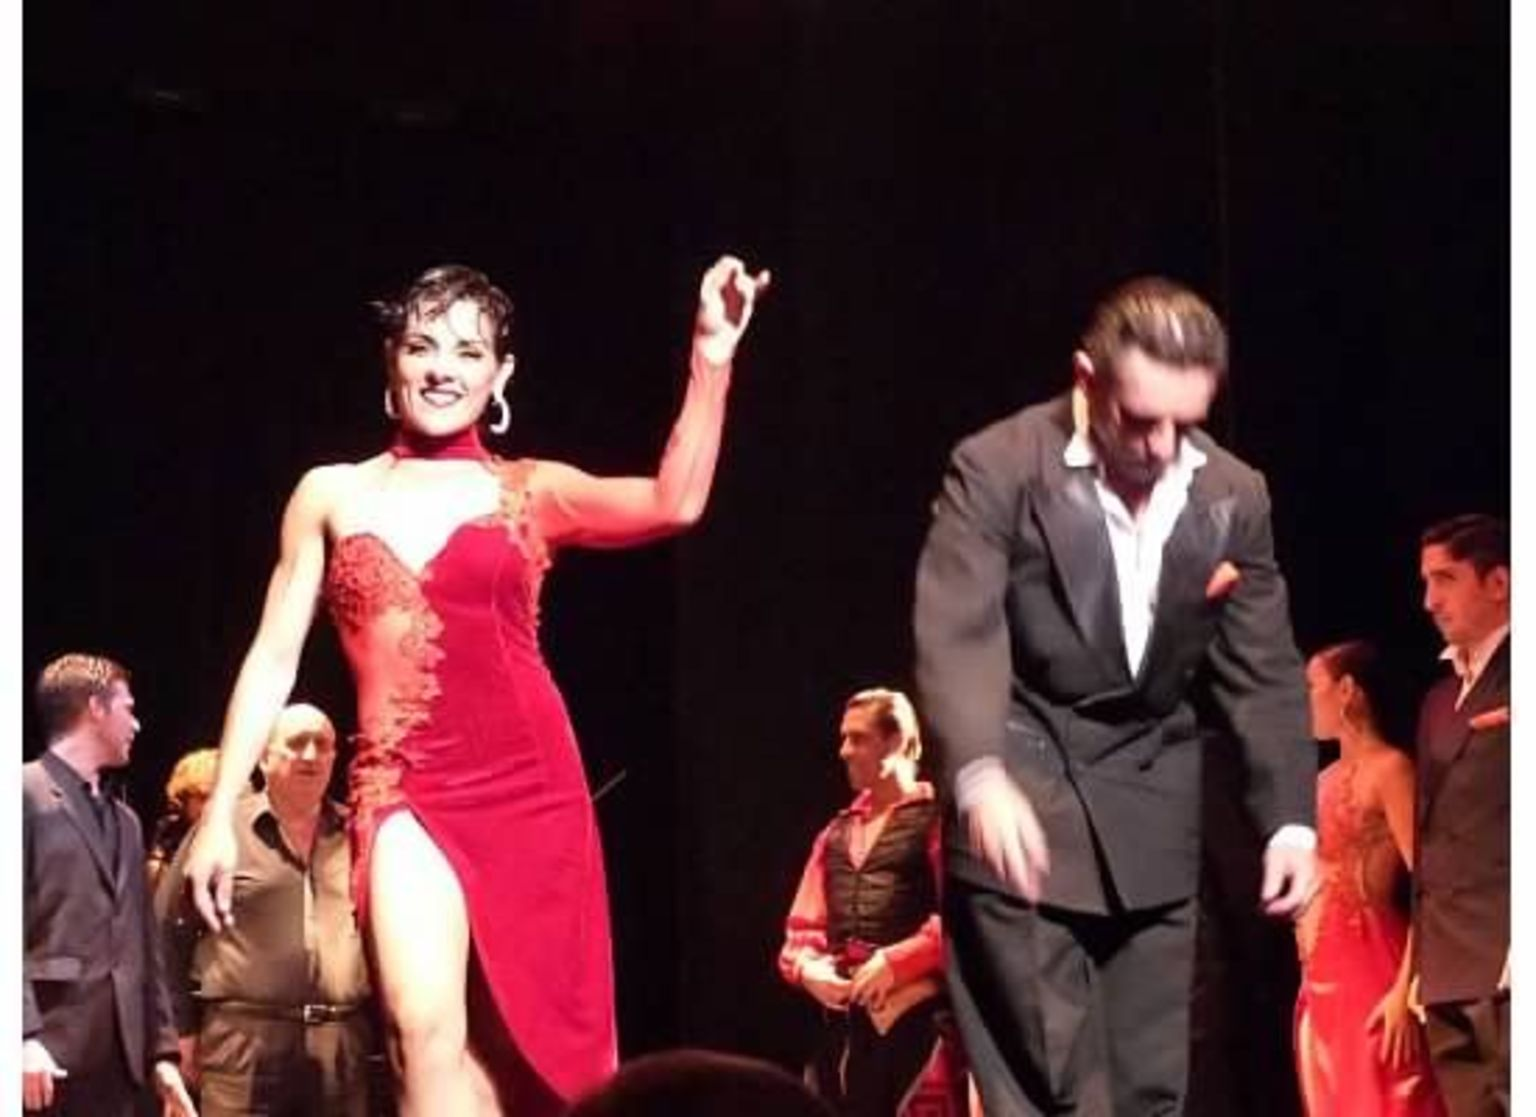 MORE PHOTOS, Piazzolla Tango Show and Dinner in Buenos Aires